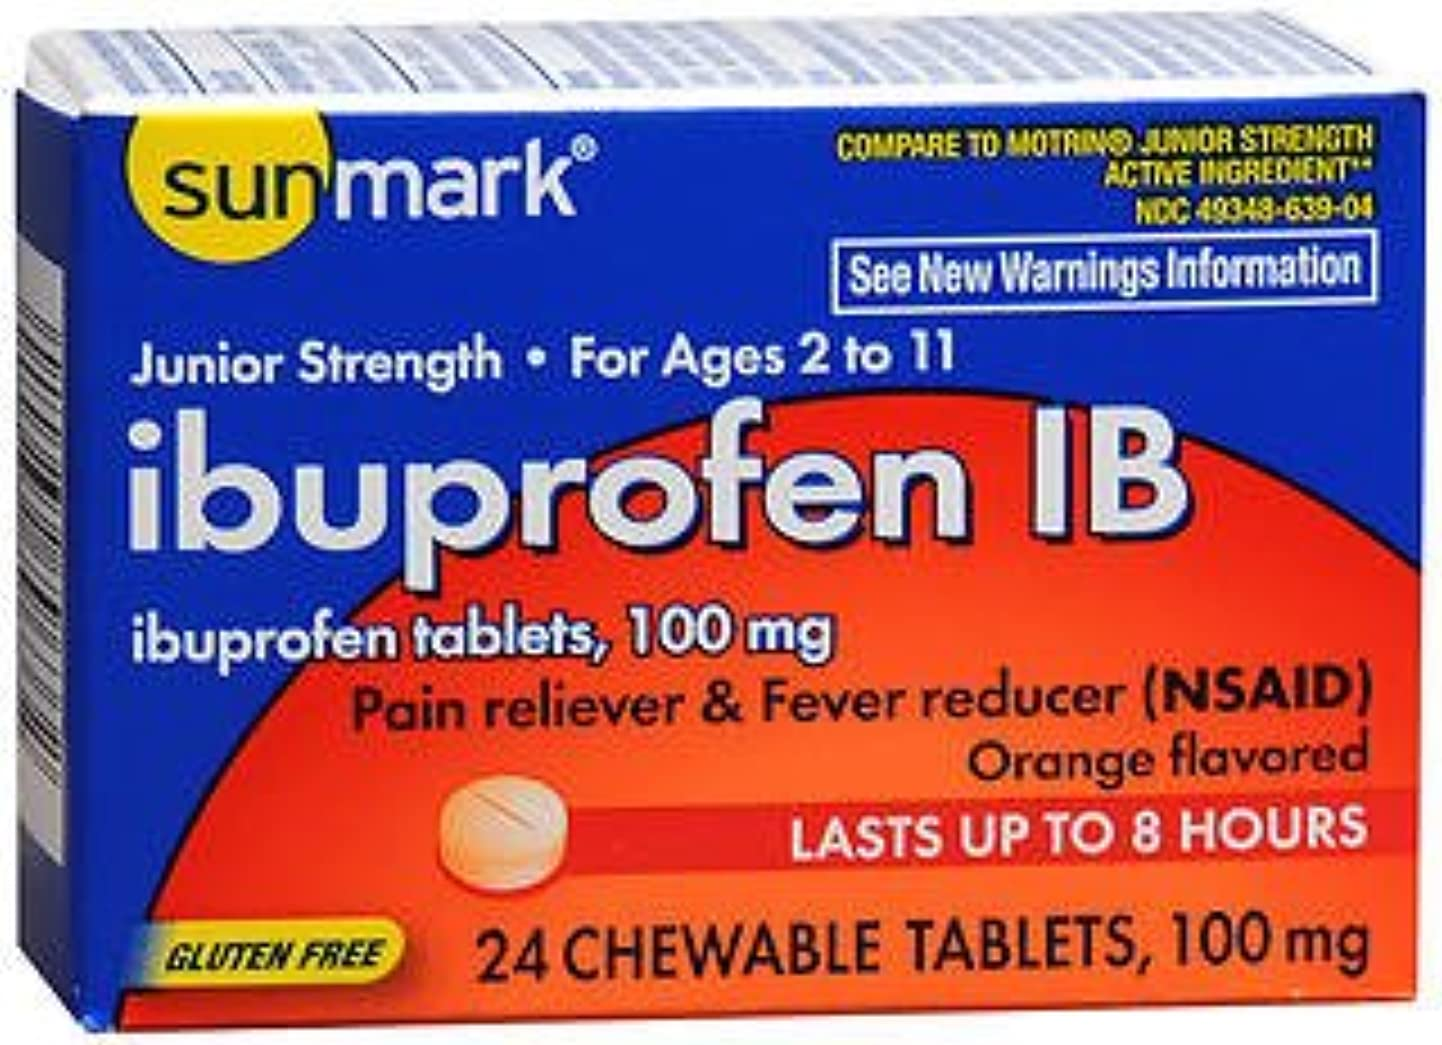 Sunmark Ibuprofen IB 100 mg Chewable Tablets - 24 ct, Pack of 3 hwriwrzfbfc0